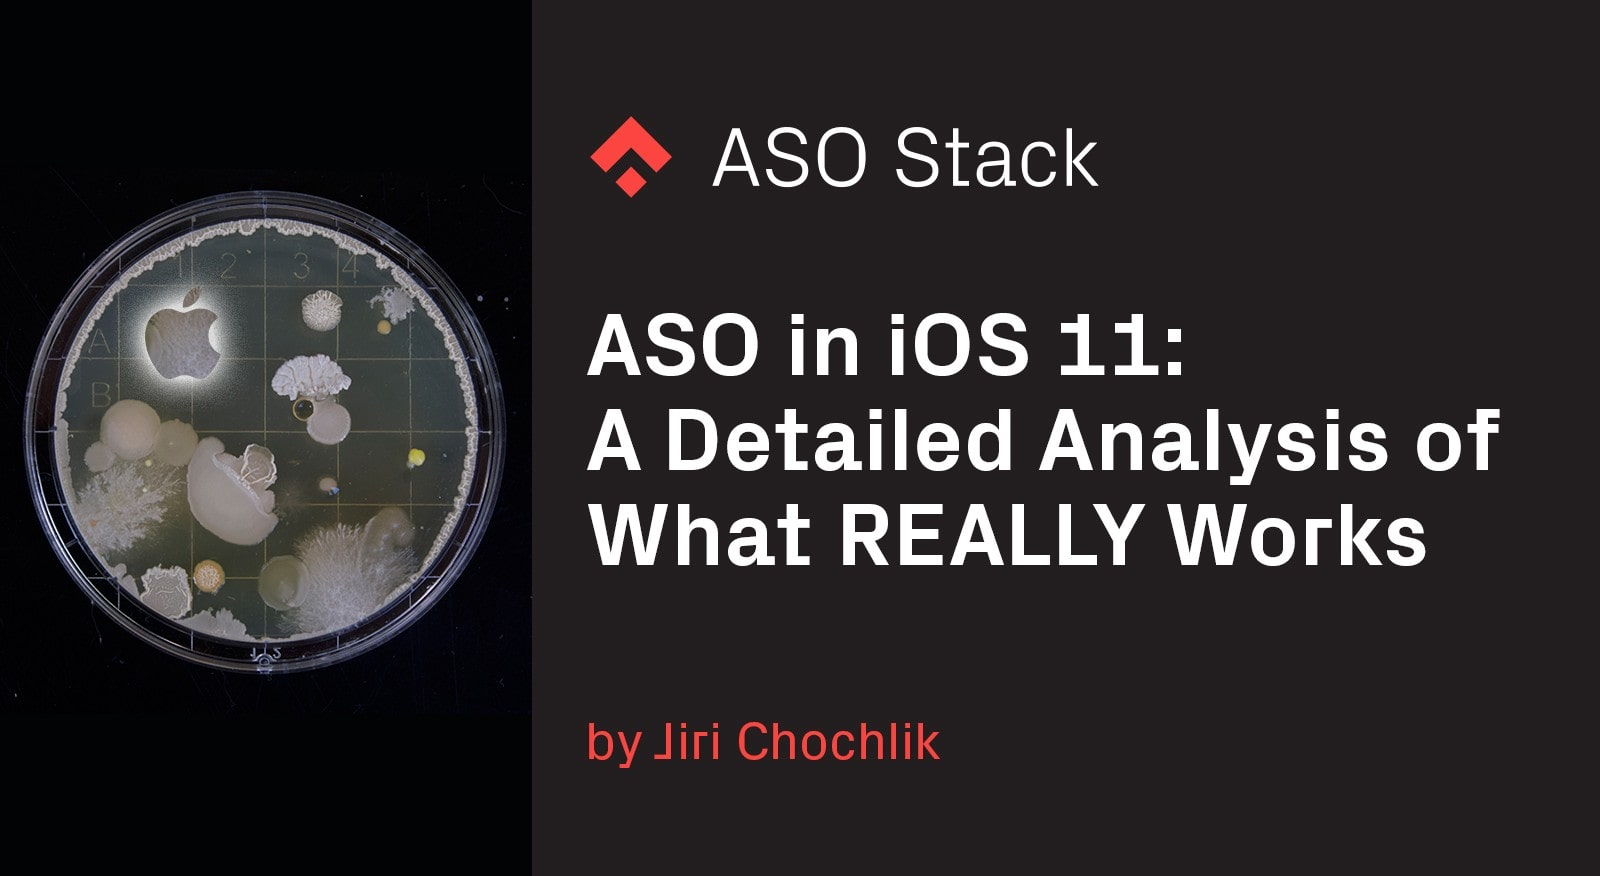 ASO in iOS 11- A Detailed Analysis of What REALLY Works